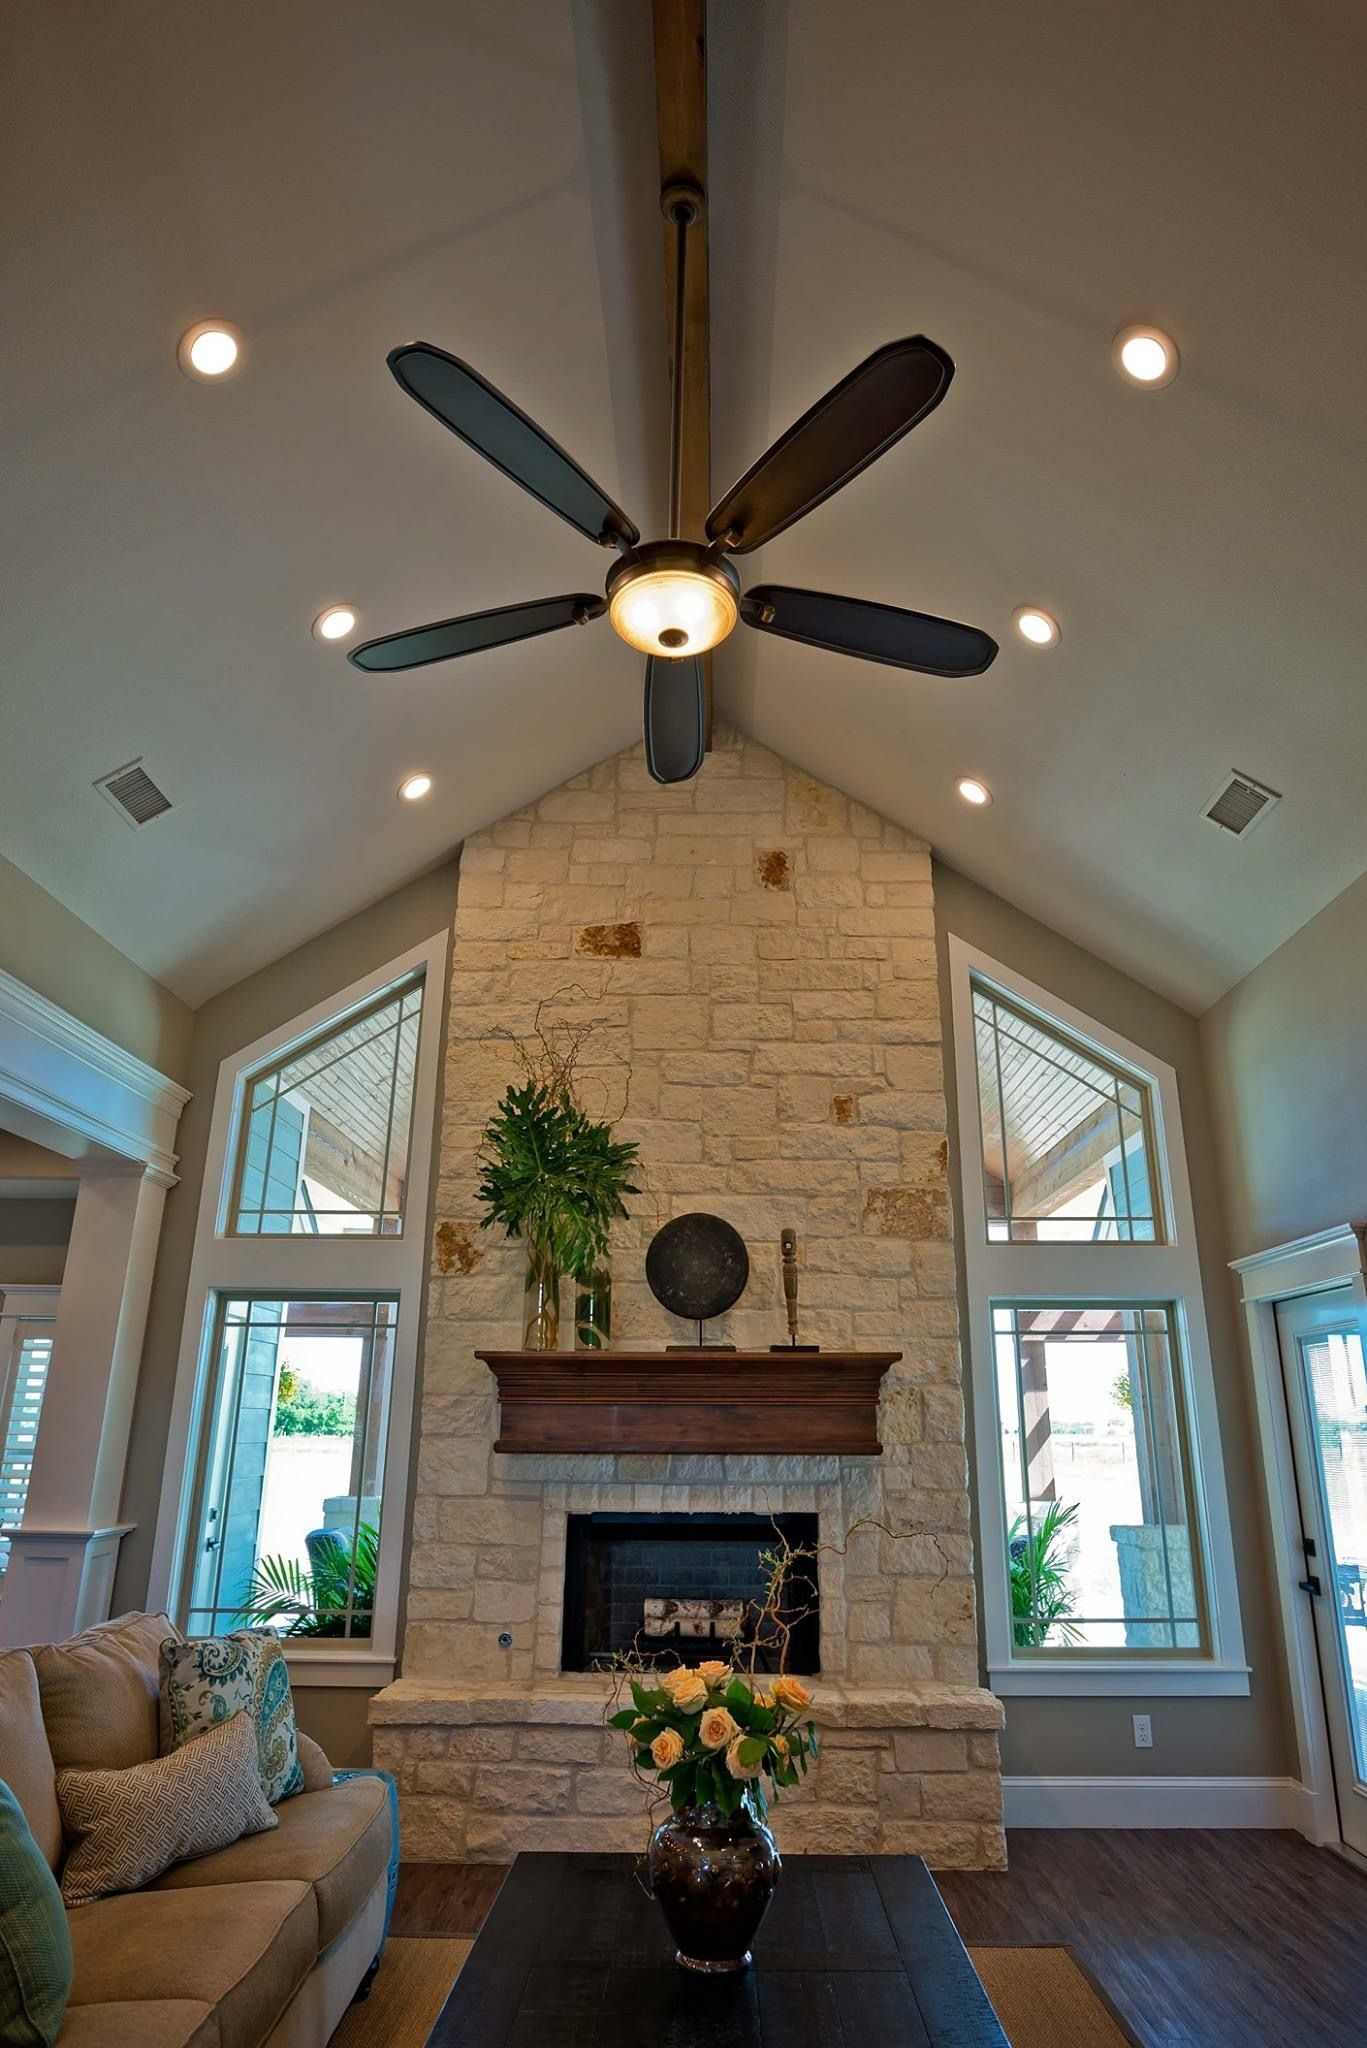 High Ceilings With Recessed Lighting In Living Room Tall Ceiling Living Room Living Room Tall Ceilings Living Room Lighting